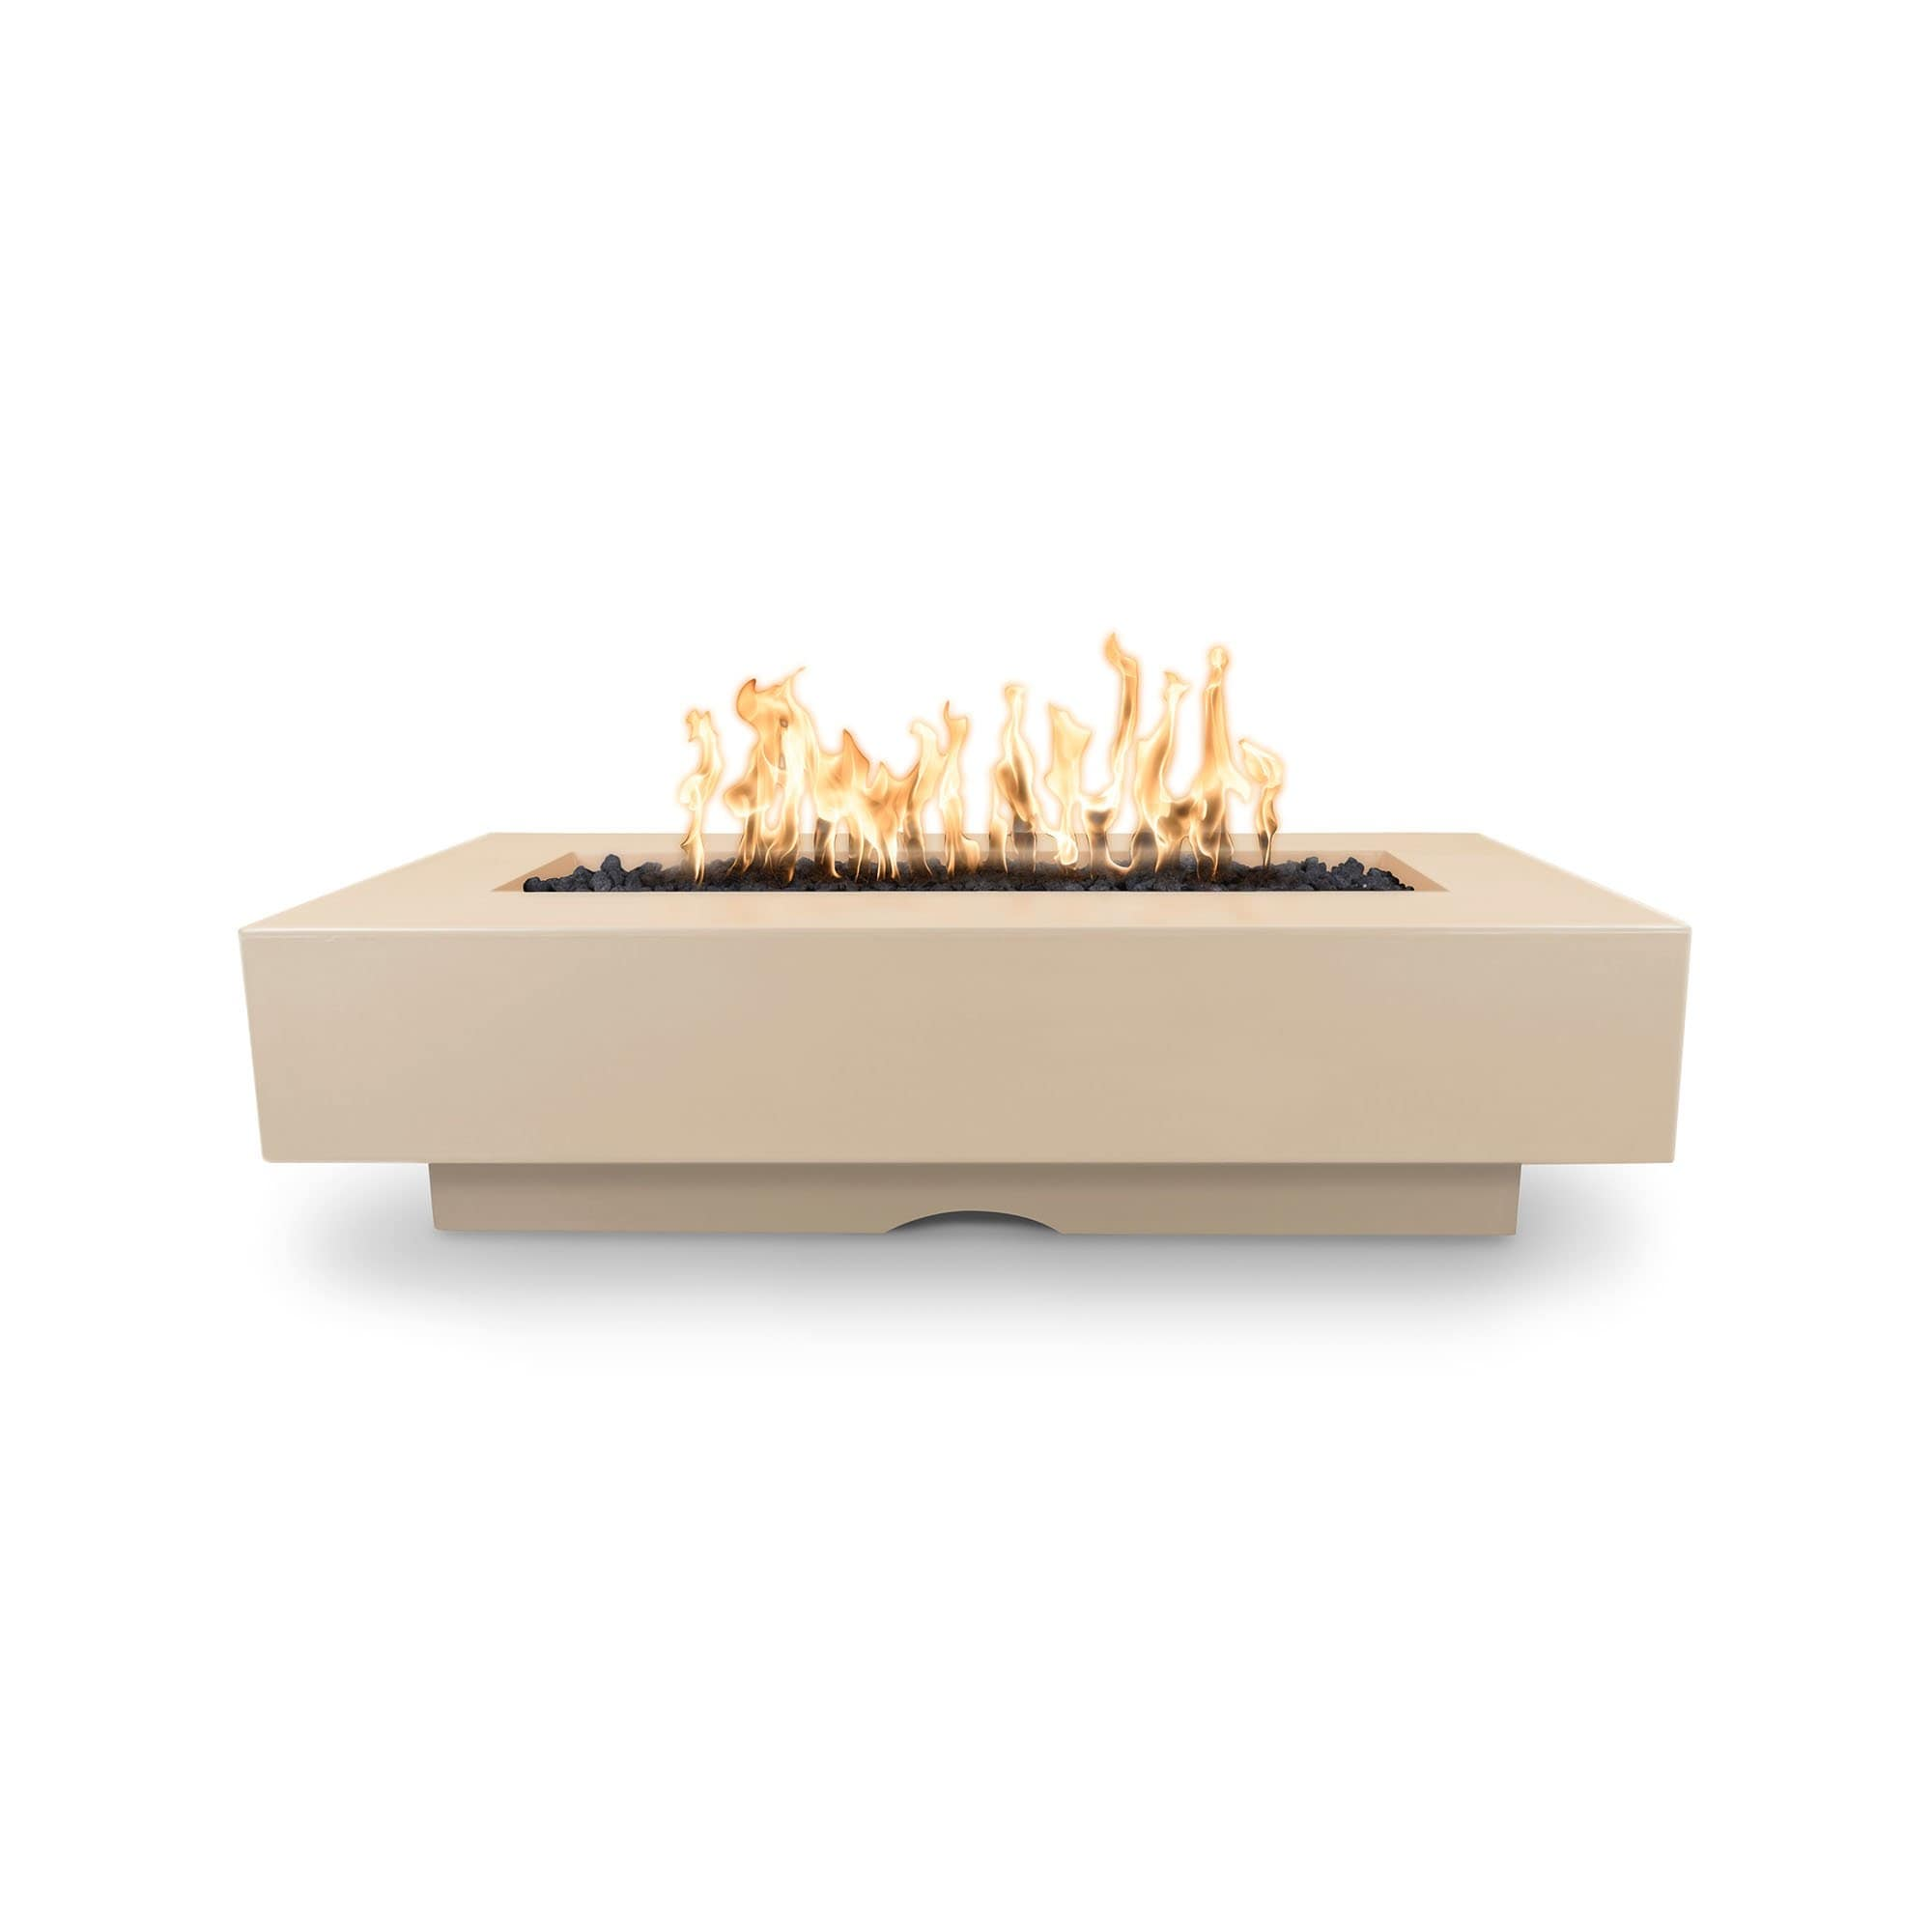 "The Outdoor Plus Del Mar Concrete Fire Pit 84"" Model OPT-DEL8428 Fire Pit The Outdoor Plus Vanilla Electronic Ignition Natural Gas"